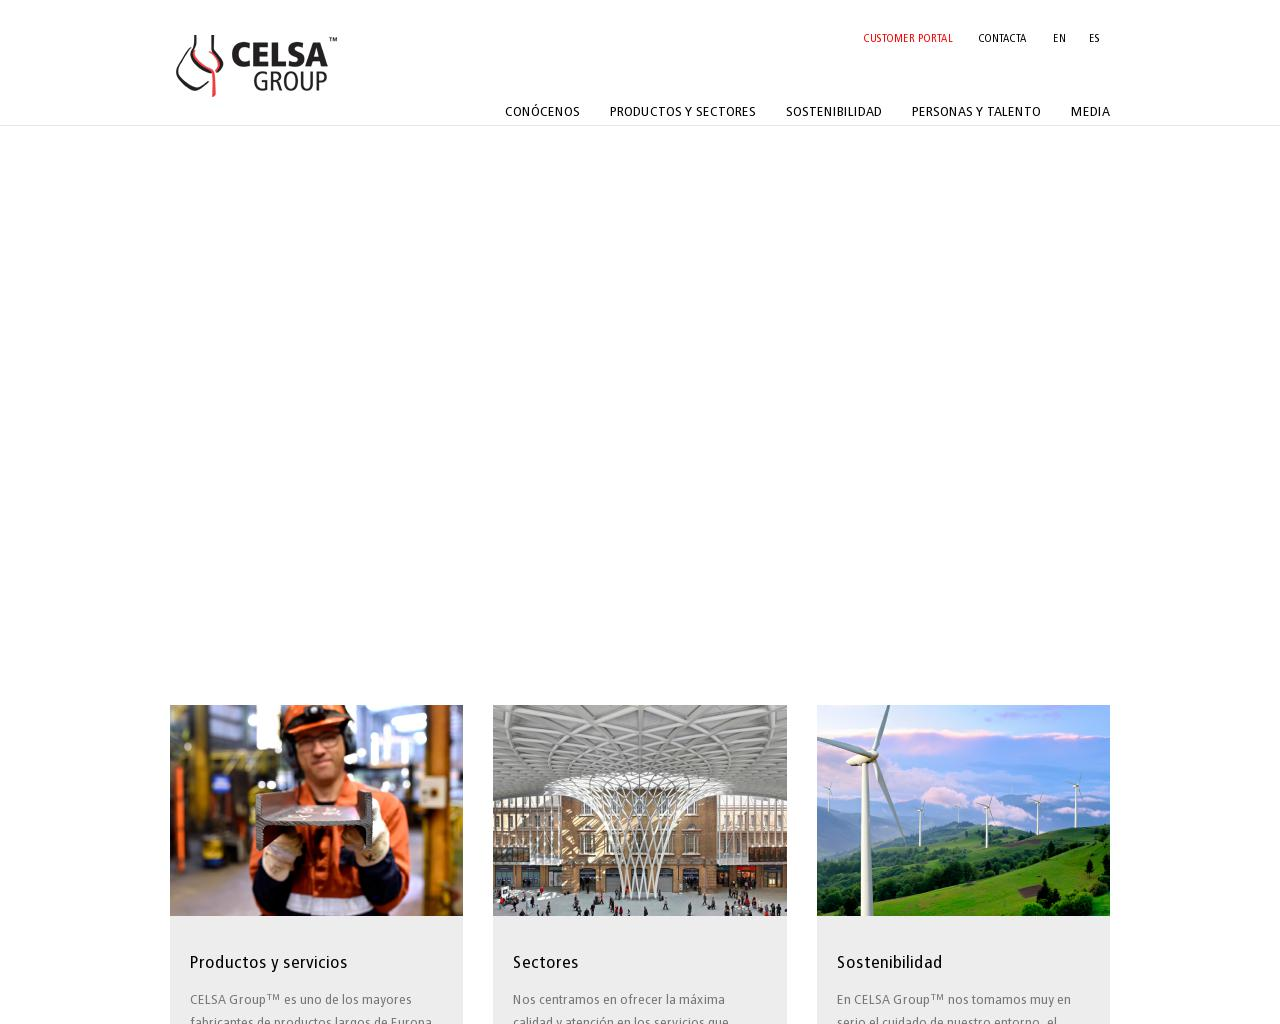 celsagroup.com